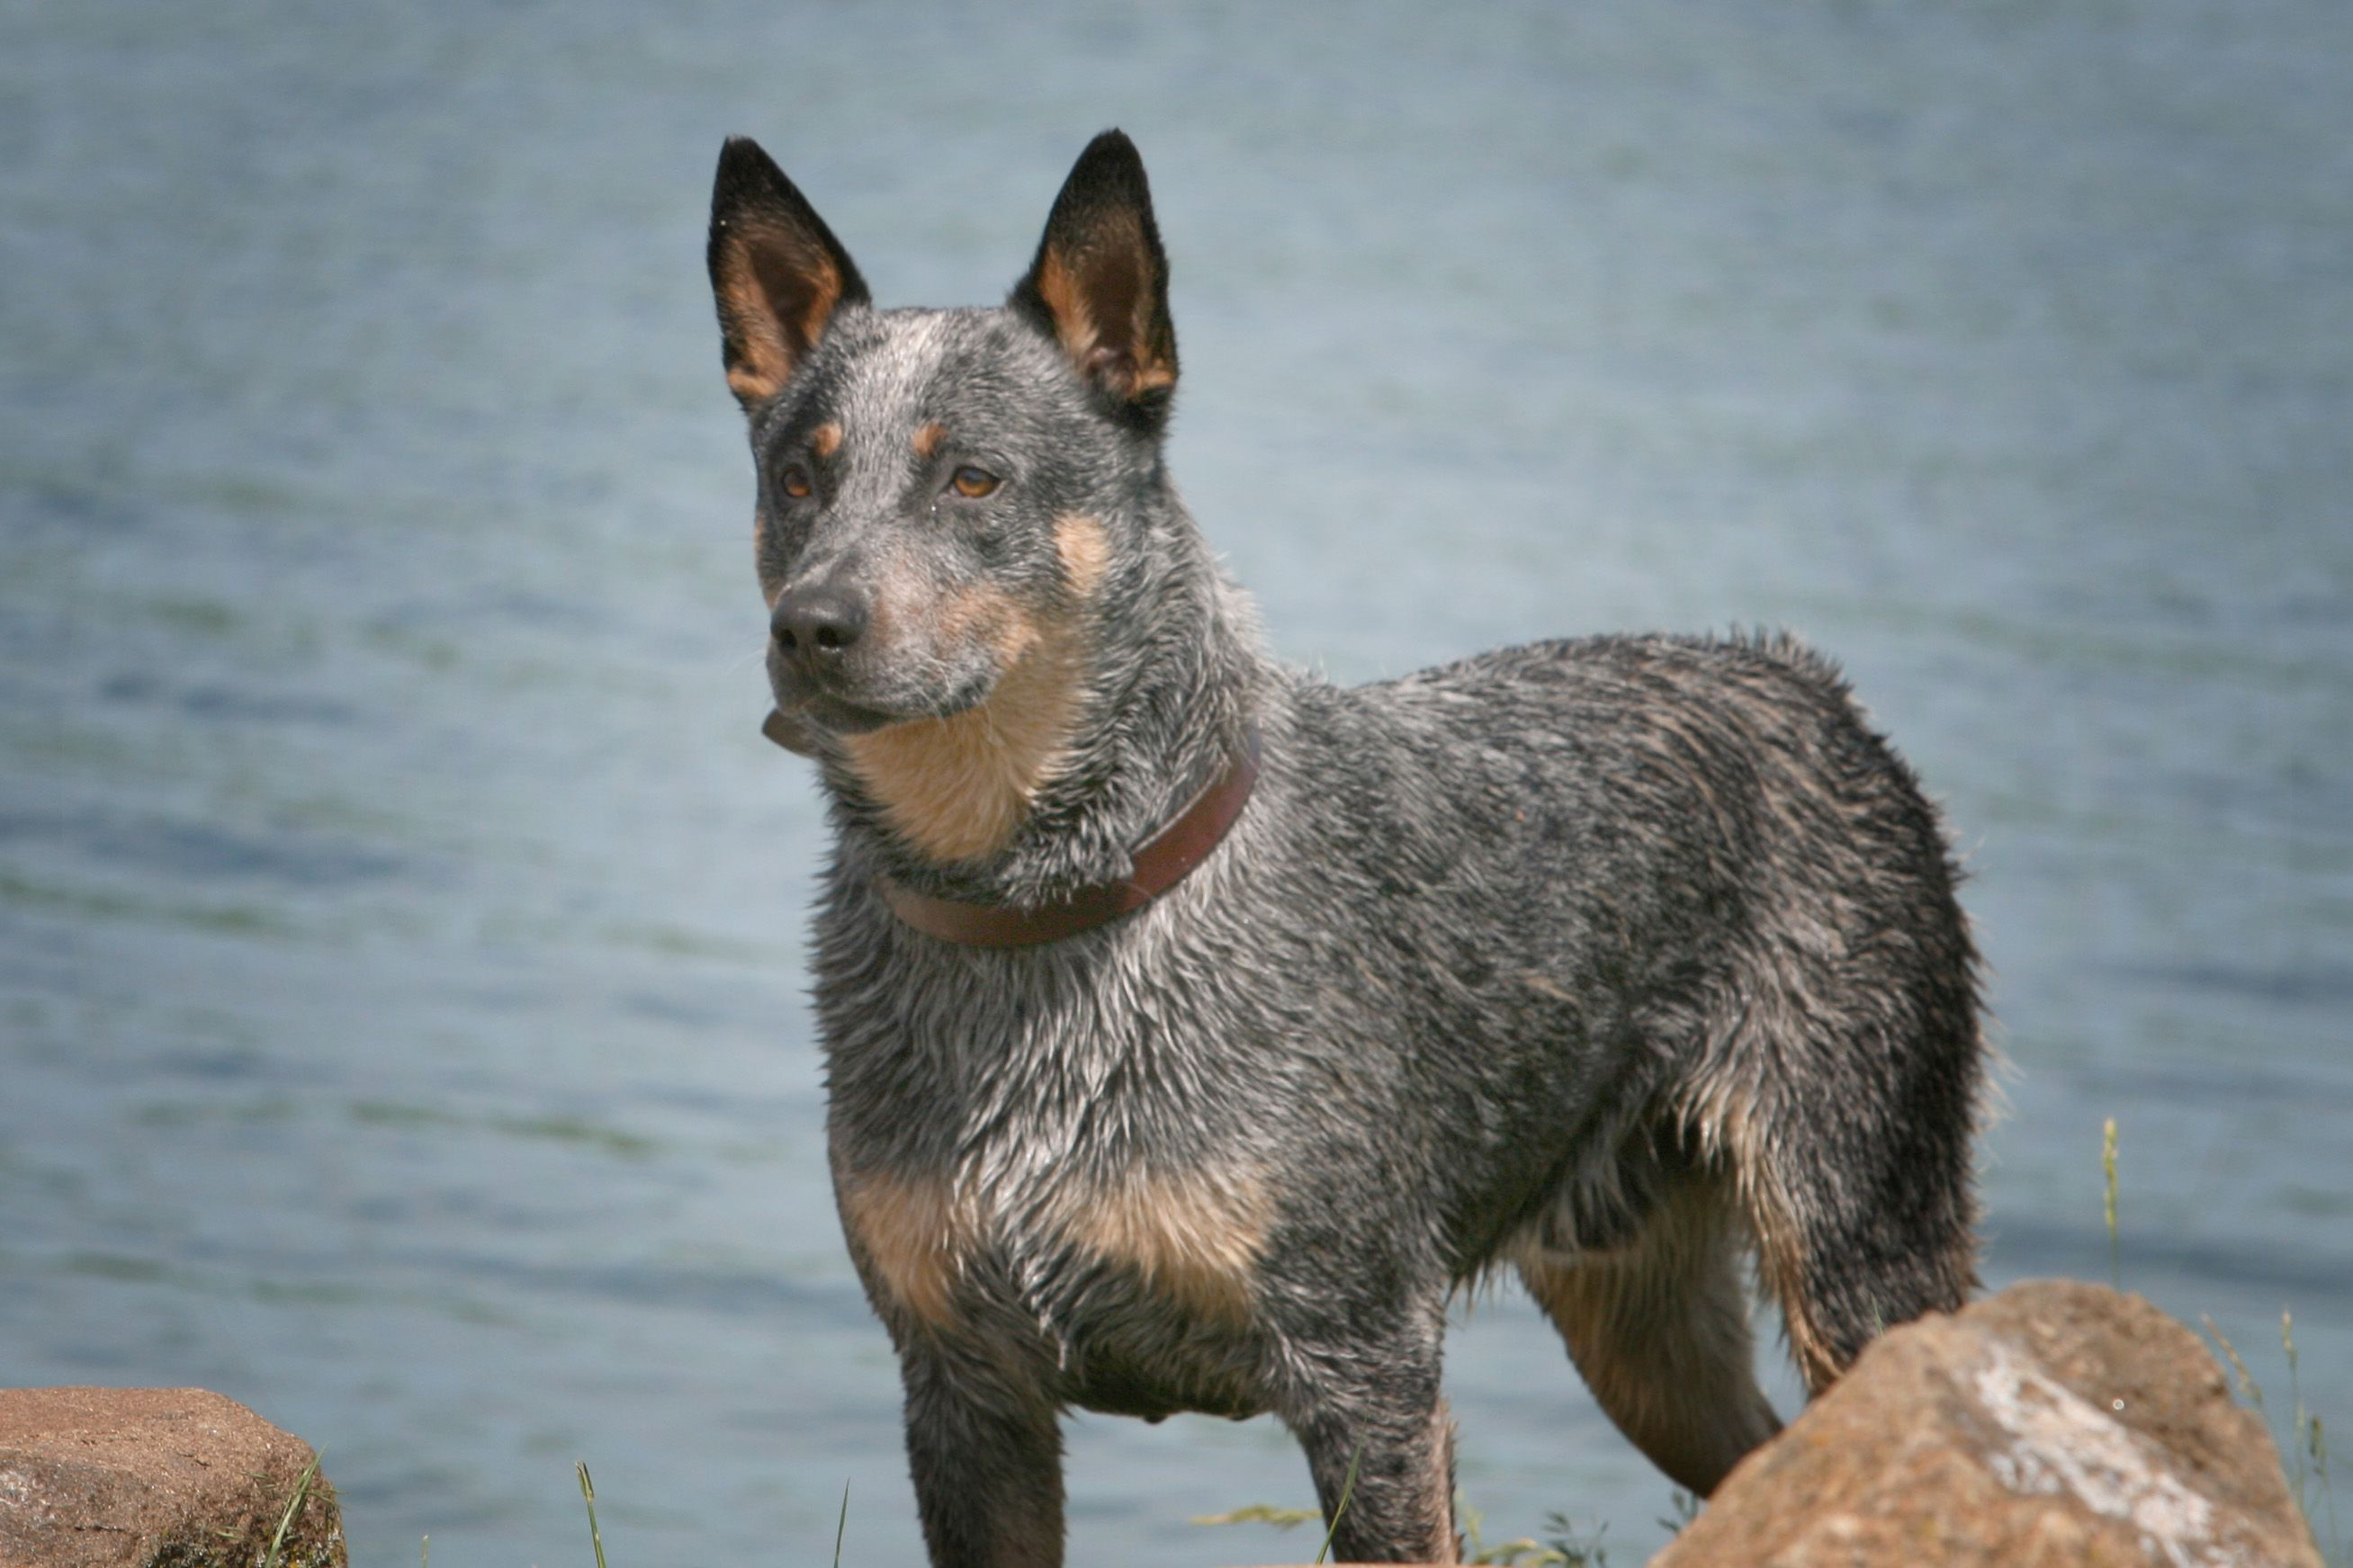 Http Akinsfarms Files Wordpress Com 2012 05 Max10 Jpg Max Our Blue Heeler He Loves To Swim Caes De Gado Blue Heelers Material Do Cao